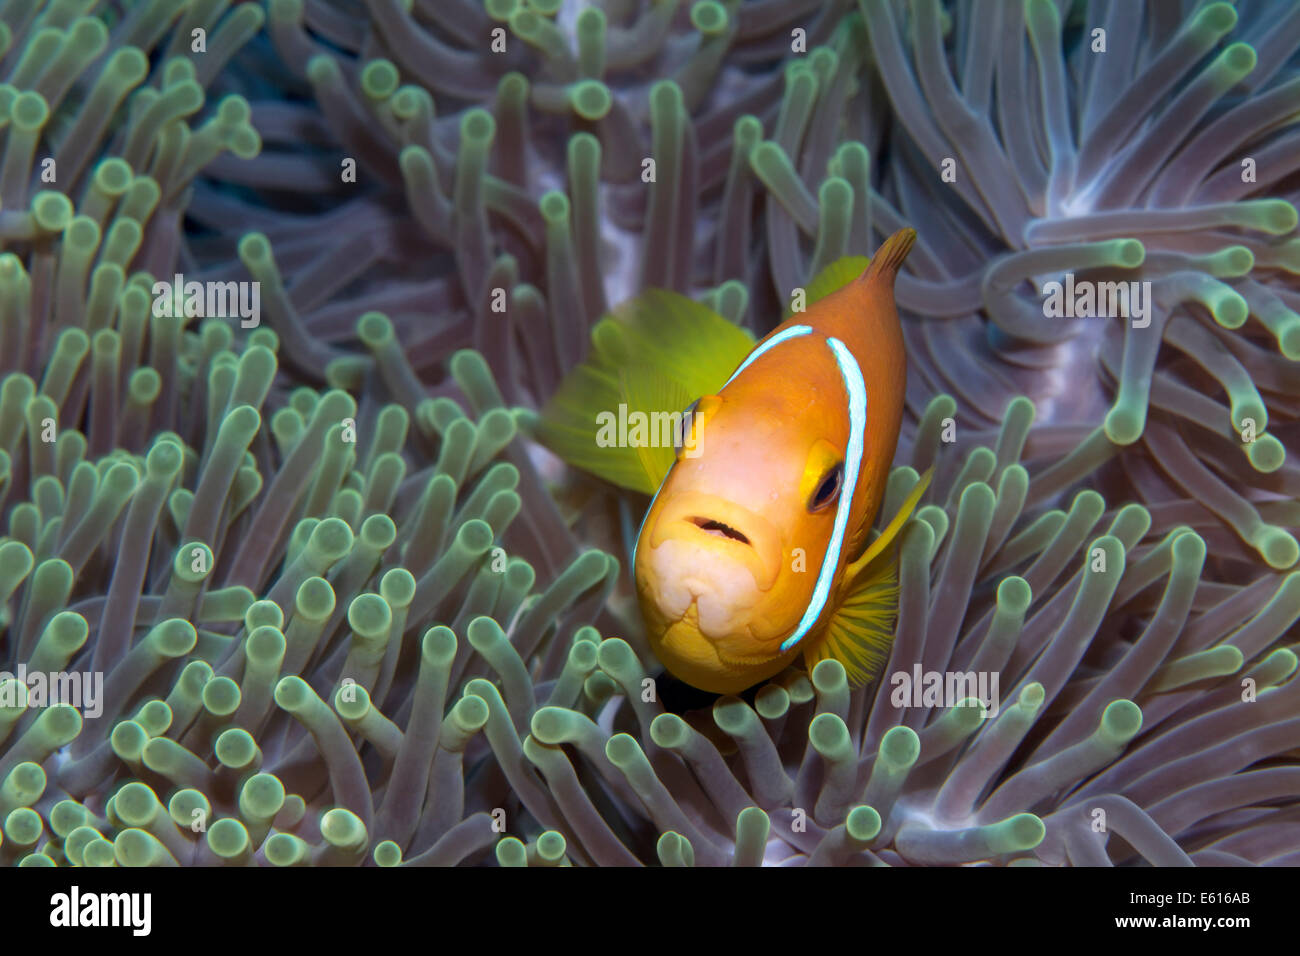 Maldive Anemonefish or Blackfinned Anemonefish (Amphiprion nigripes) in a Magnificent Sea Anemone (Heteractis magnifica) - Stock Image